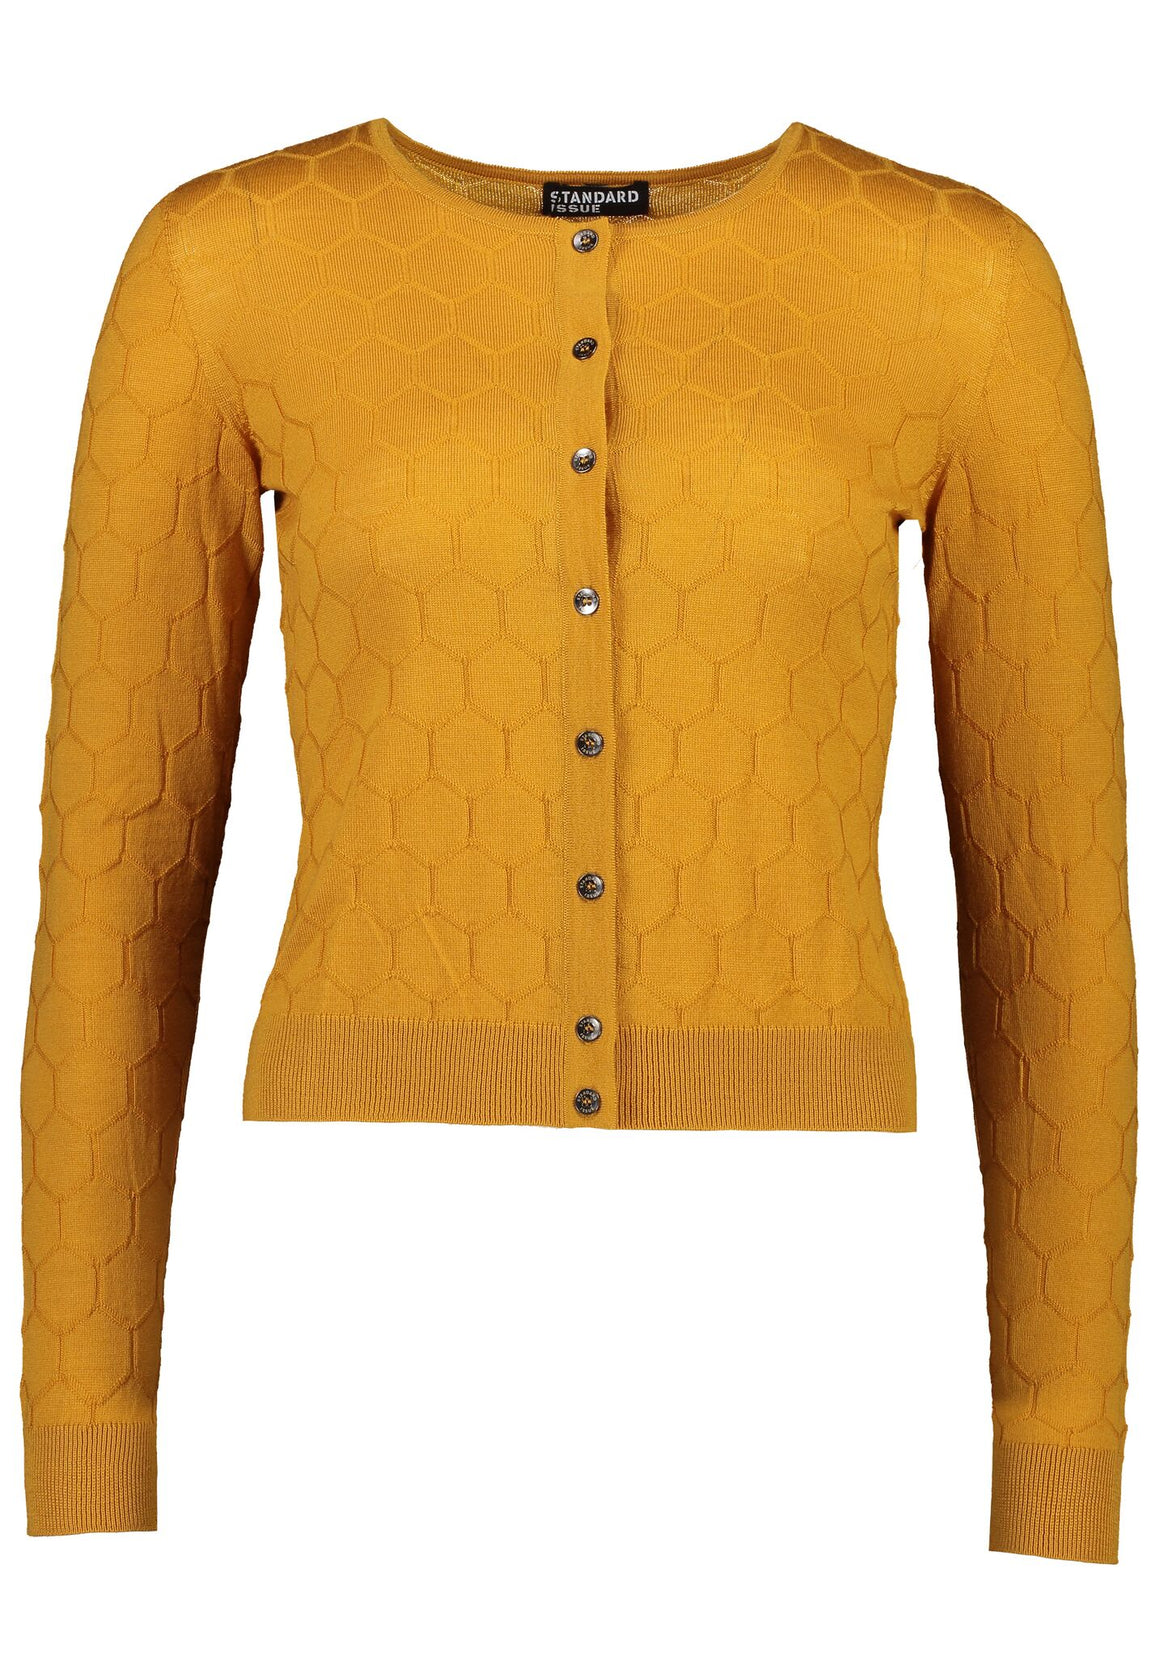 Standard Issue Honeycomb Cardi | Shop Online at Wallace & Gibbs NZ